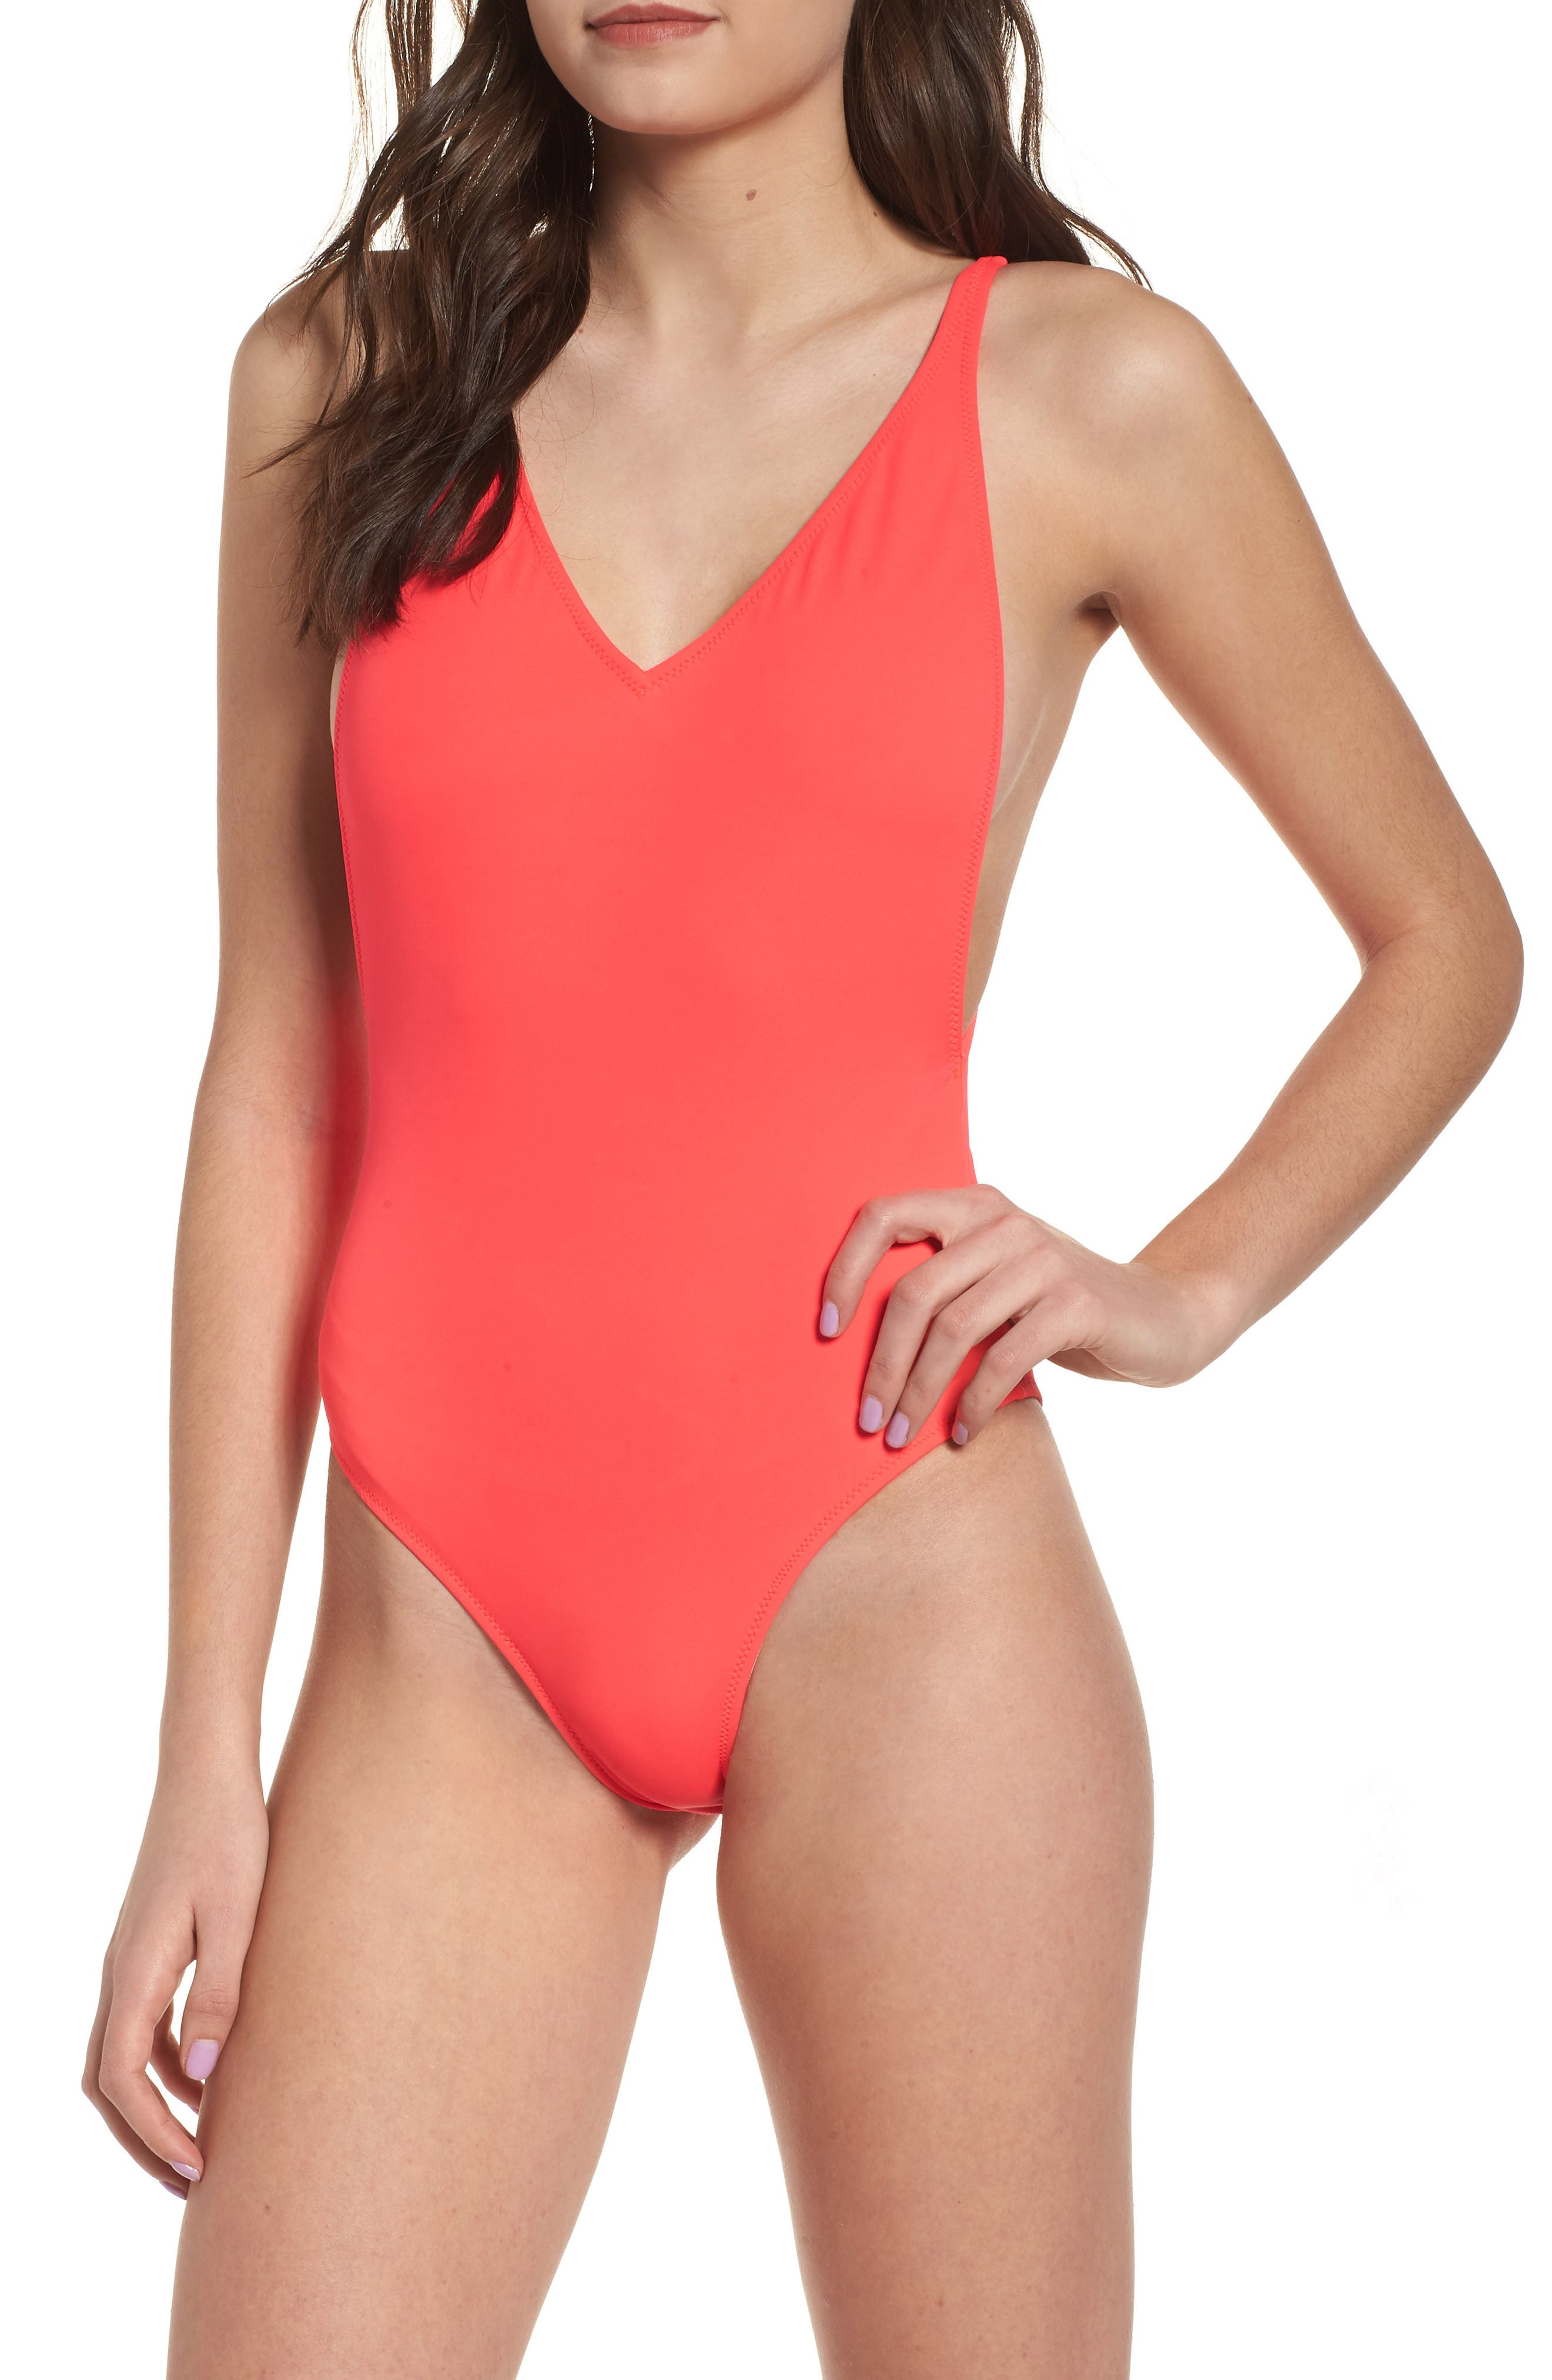 Pamela One-Piece Swimsuit,                             Main thumbnail 1, color,                             Red